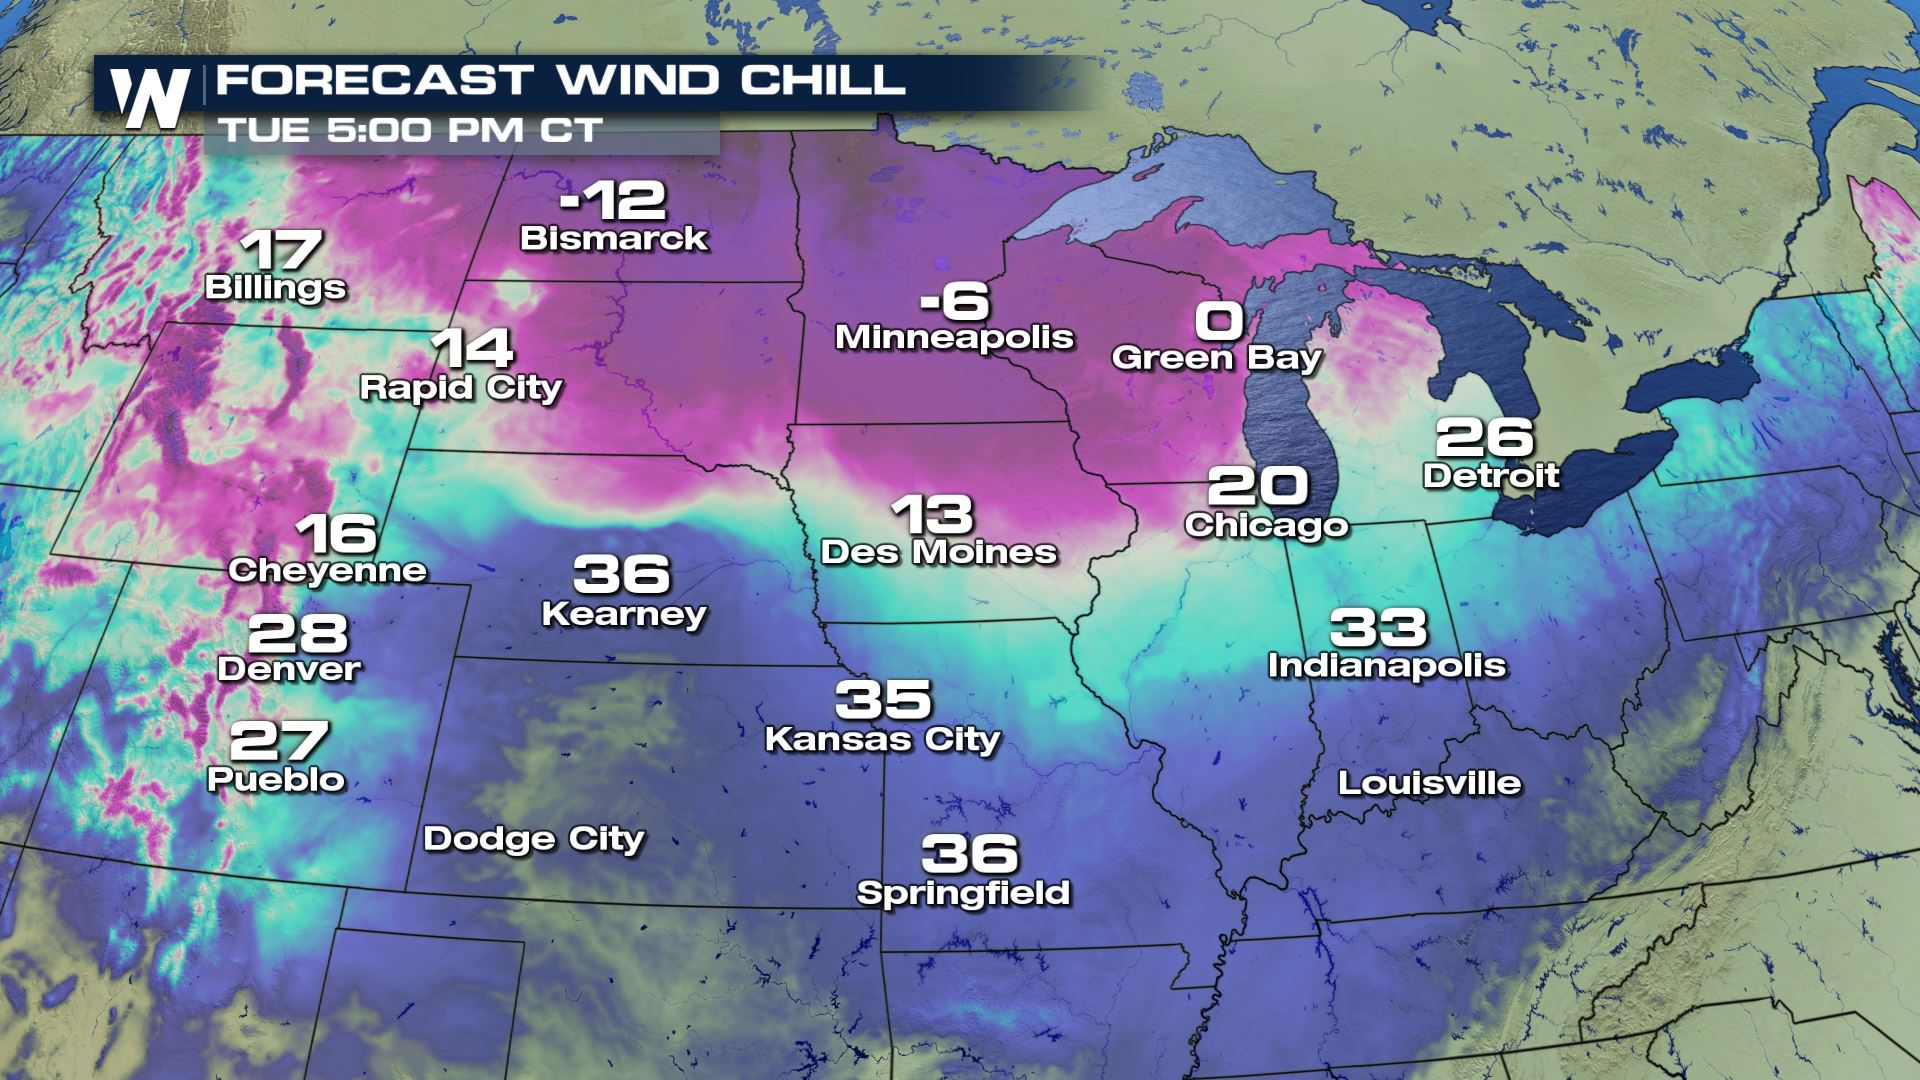 Strong Wind Chills for the Northern Plains and Great Lakes Tuesday